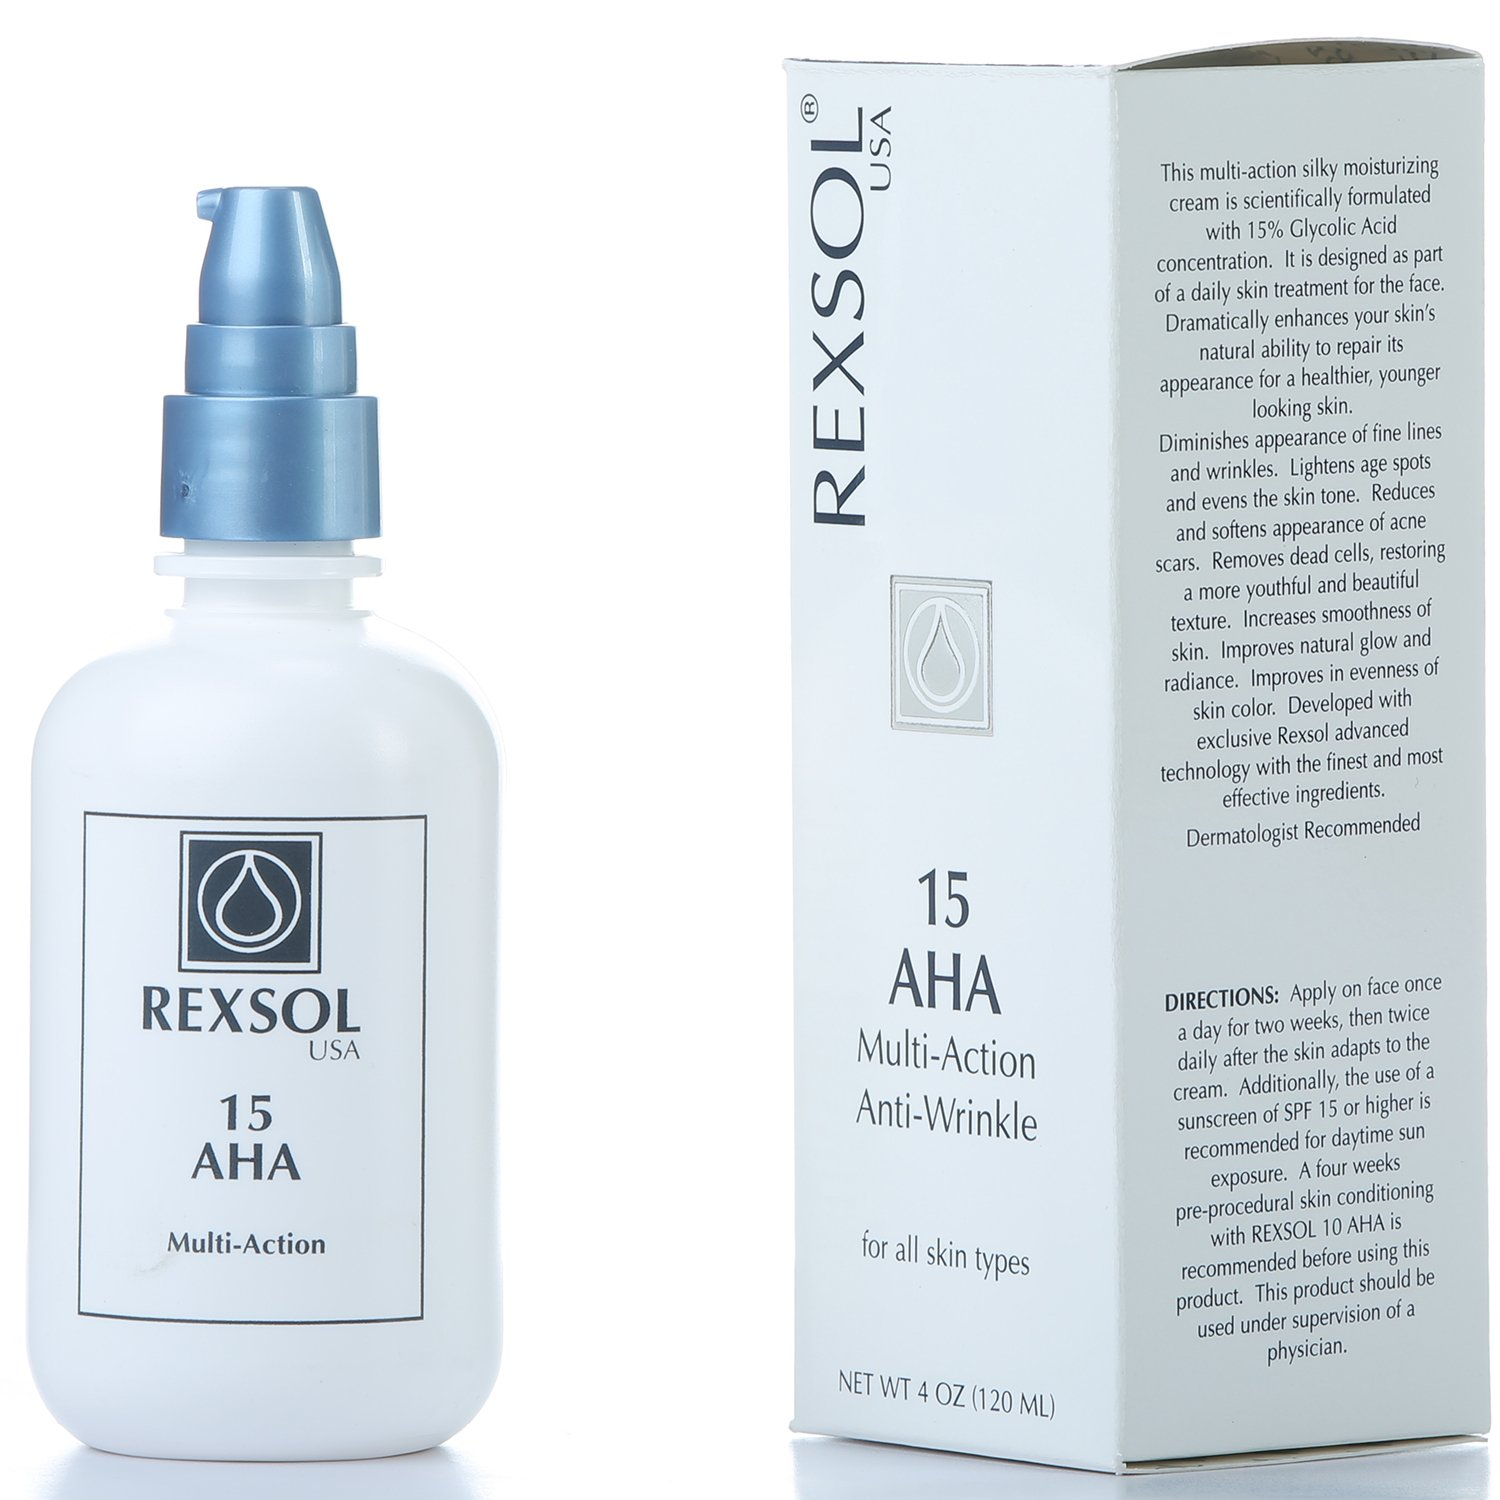 REXSOL 15 AHA Multi-action Anti-Wrinkle Cream   With Vitamin E, Algae Extract, Ginseng Extract, Calendula Extract, Caviar Extract   Diminishes appearance of fine lines & wrinkles (120 ml / 4 fl oz)